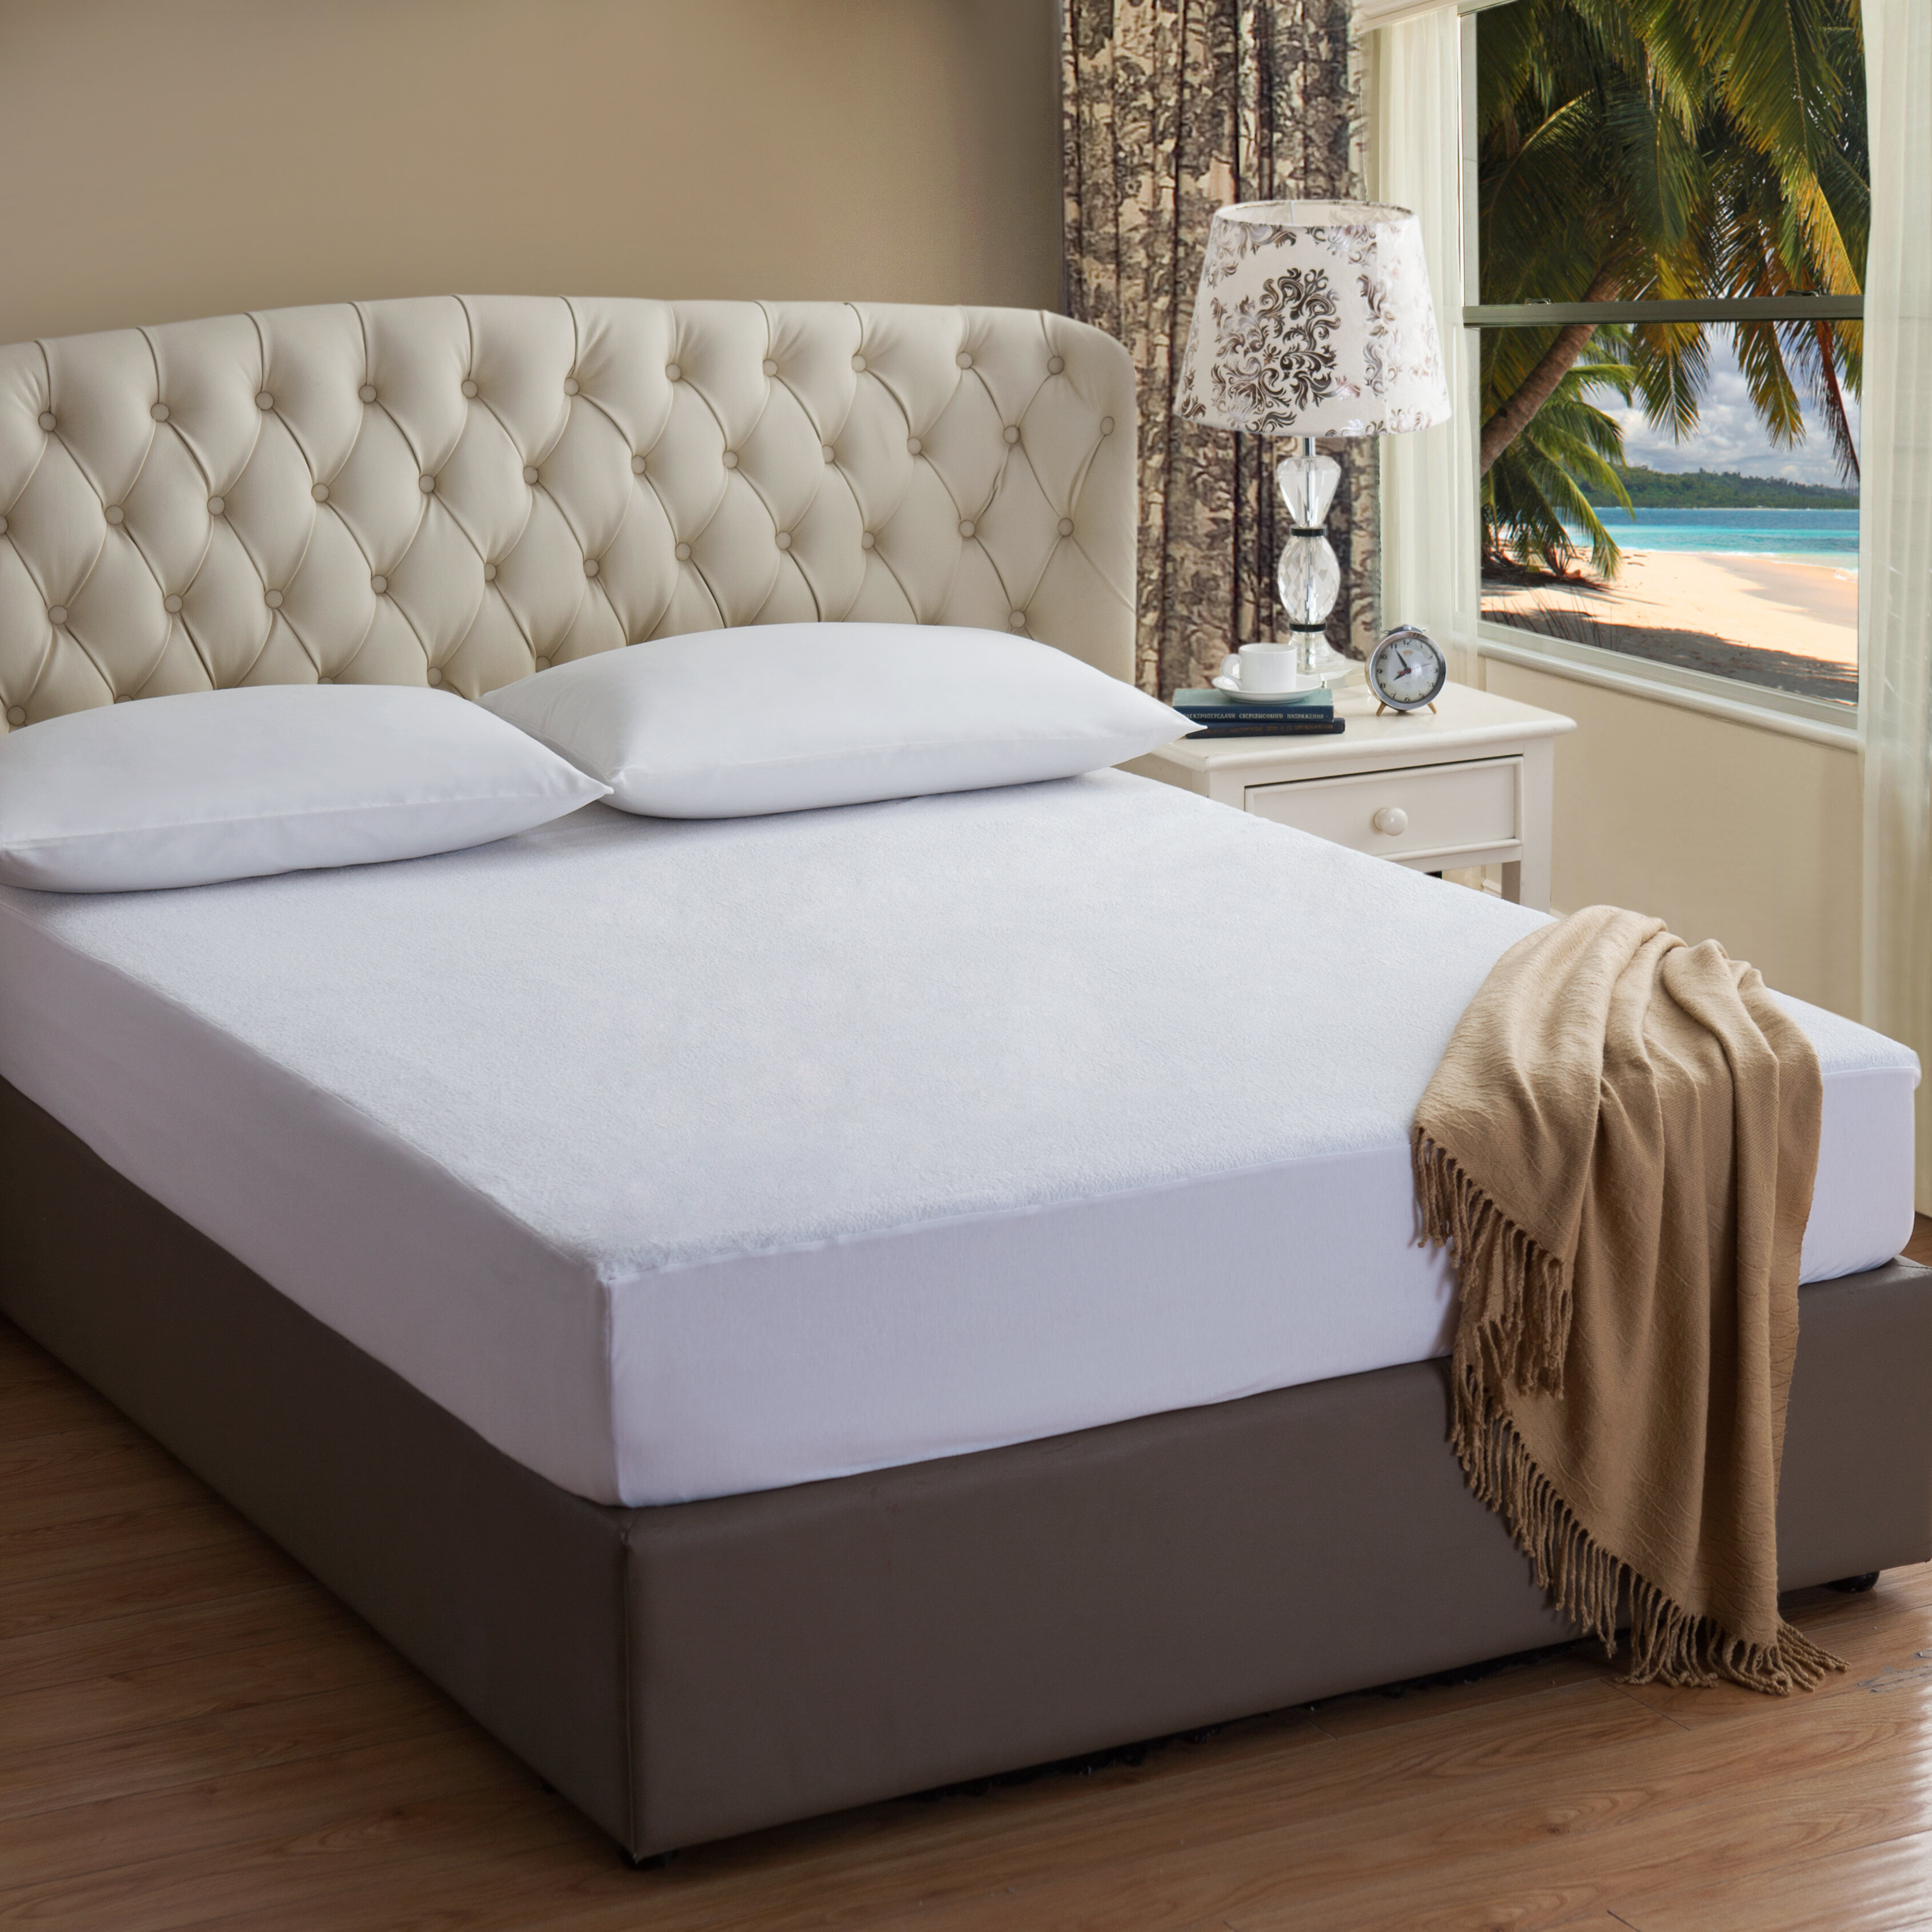 californian queenb protector cover king waterproof at drylifer drylife mattress file